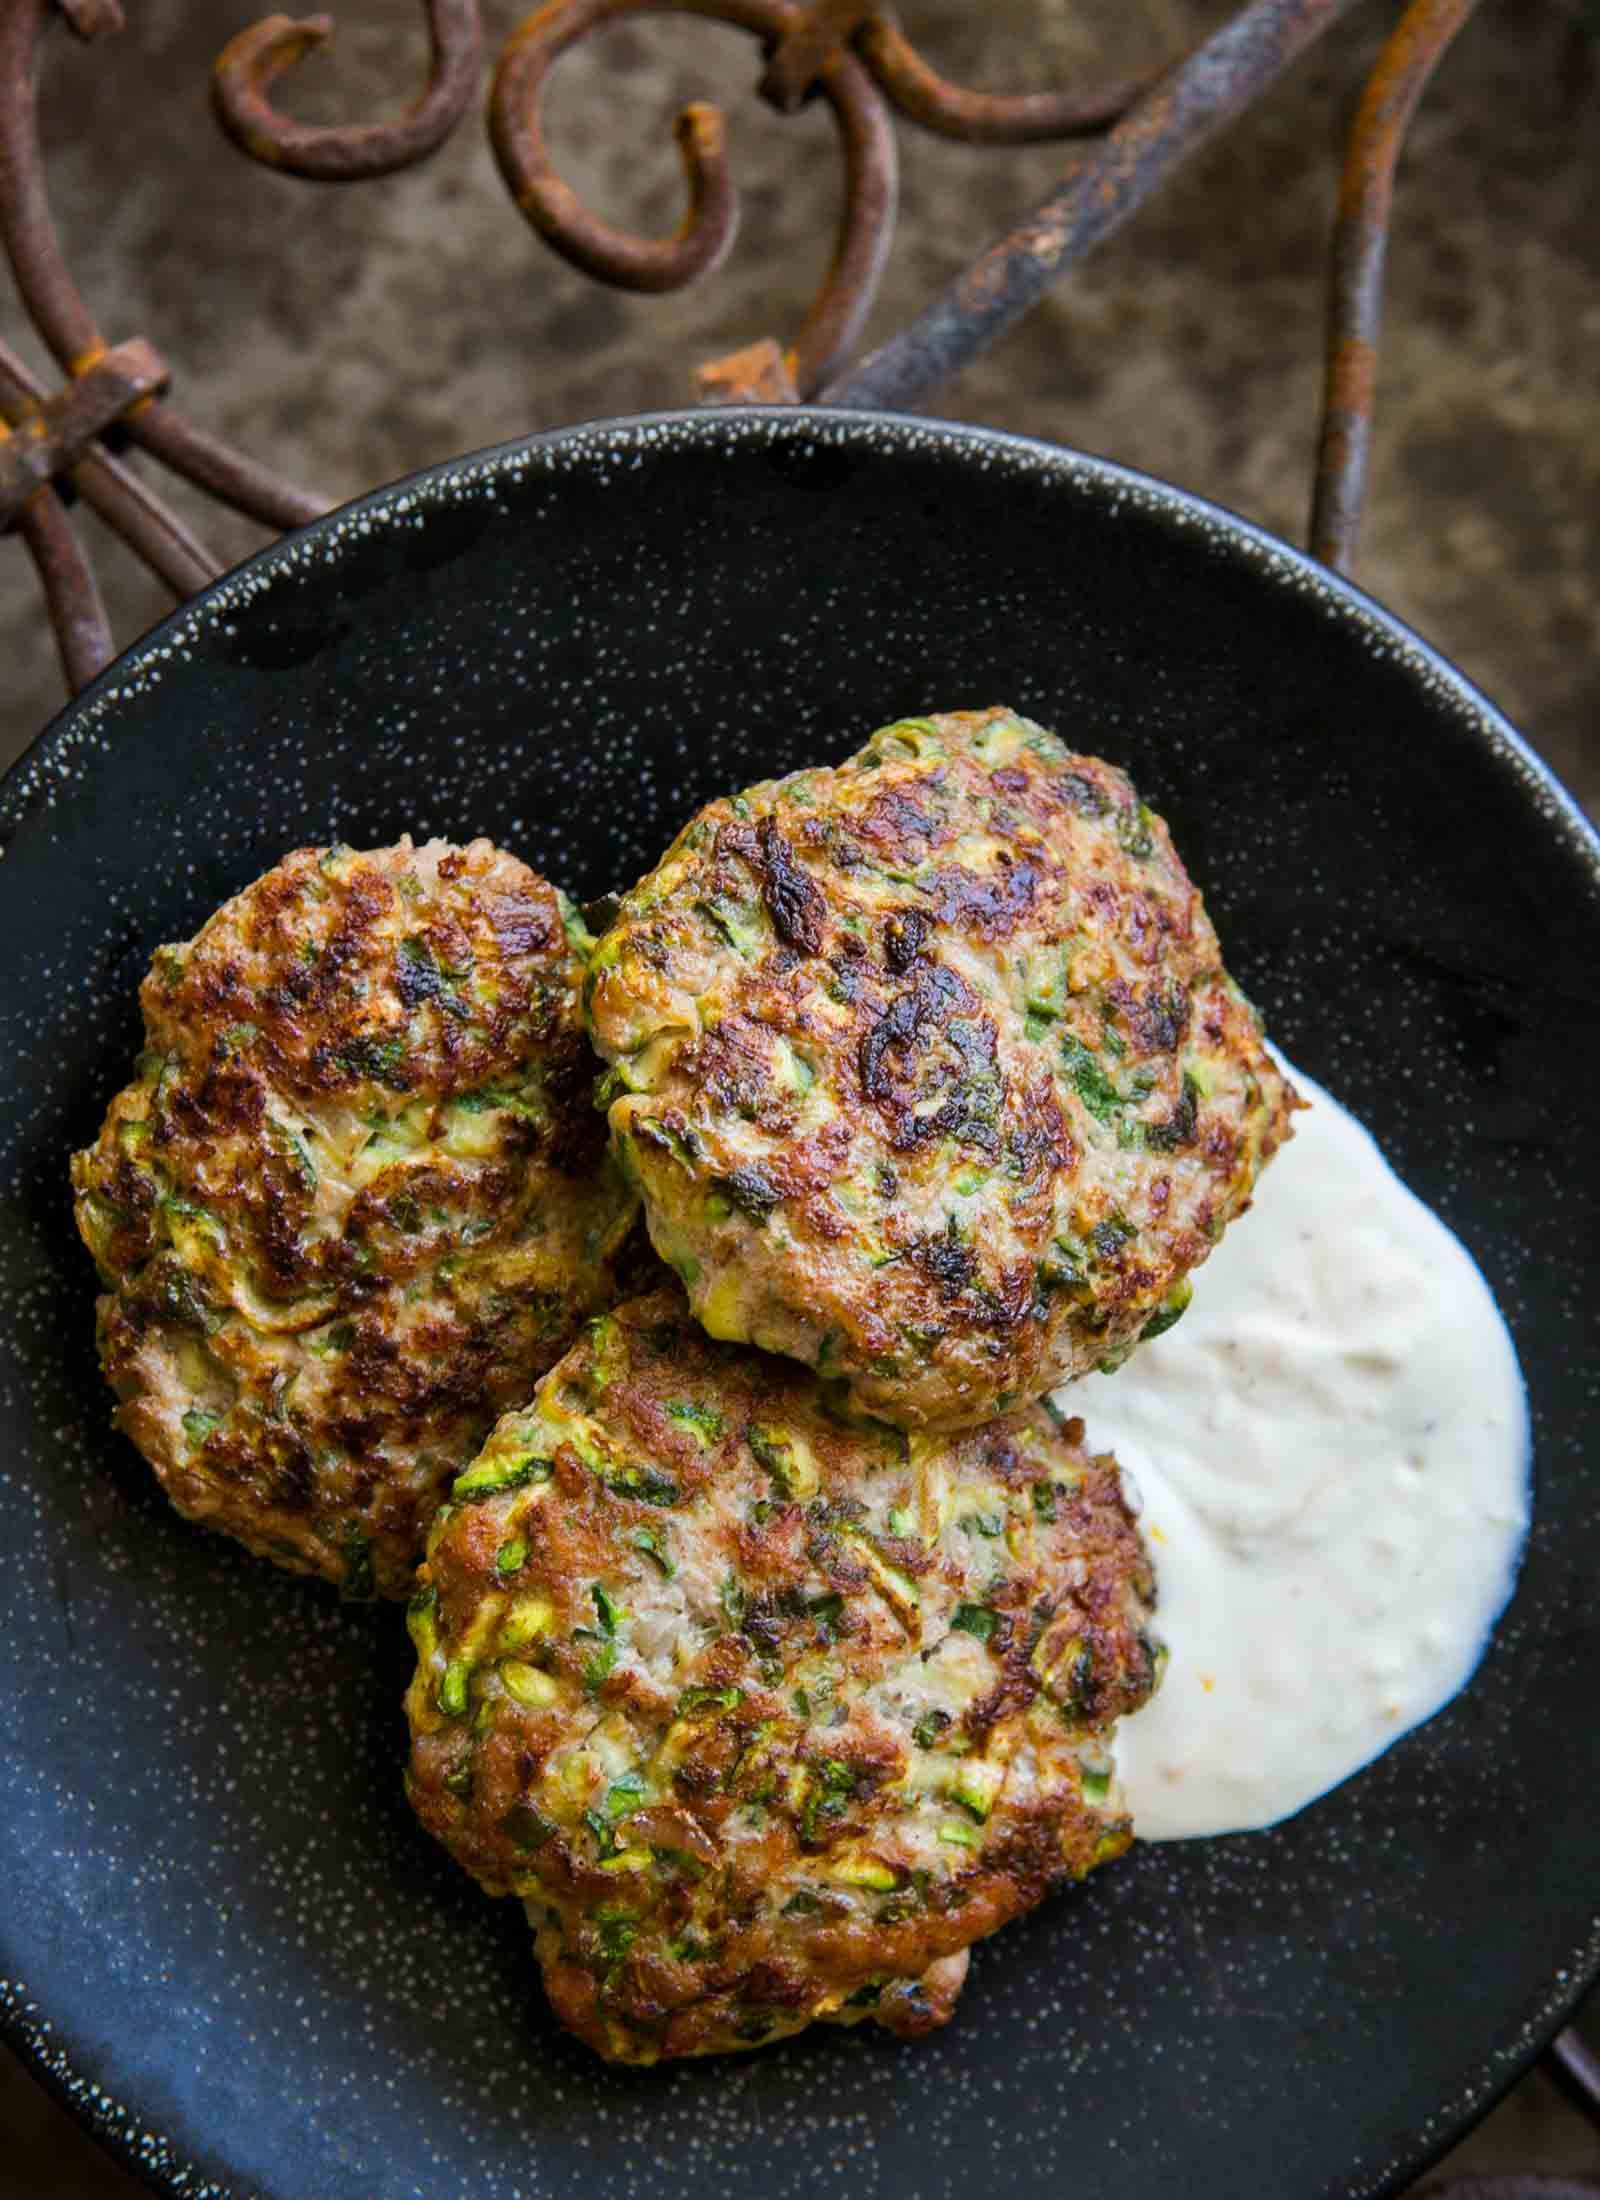 Spicy Turkey and Zucchini Burger ~ Turkey burger patties with grated zucchini, herbs, cumin, and cayenne, served with lemony sour cream sauce. ~ SimplyRecipes.com #middleeastern #gluten-free #healthy #burger